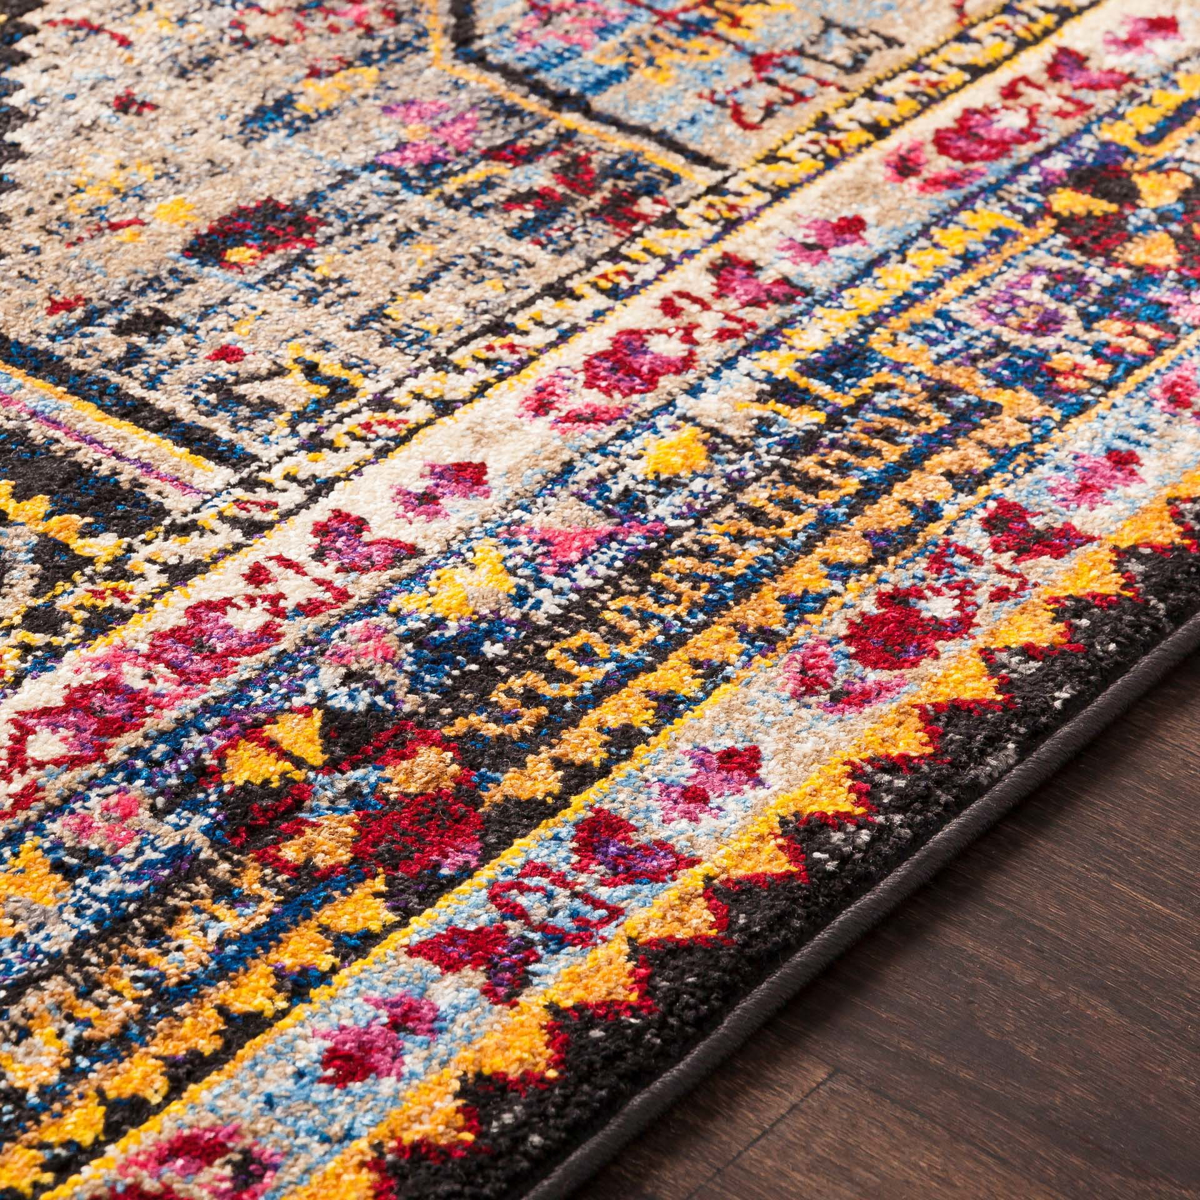 Colorful and unique 5 x 7 Turkish rug with hints of white and blue from the Surya Alchemy Collection - Detail Shot